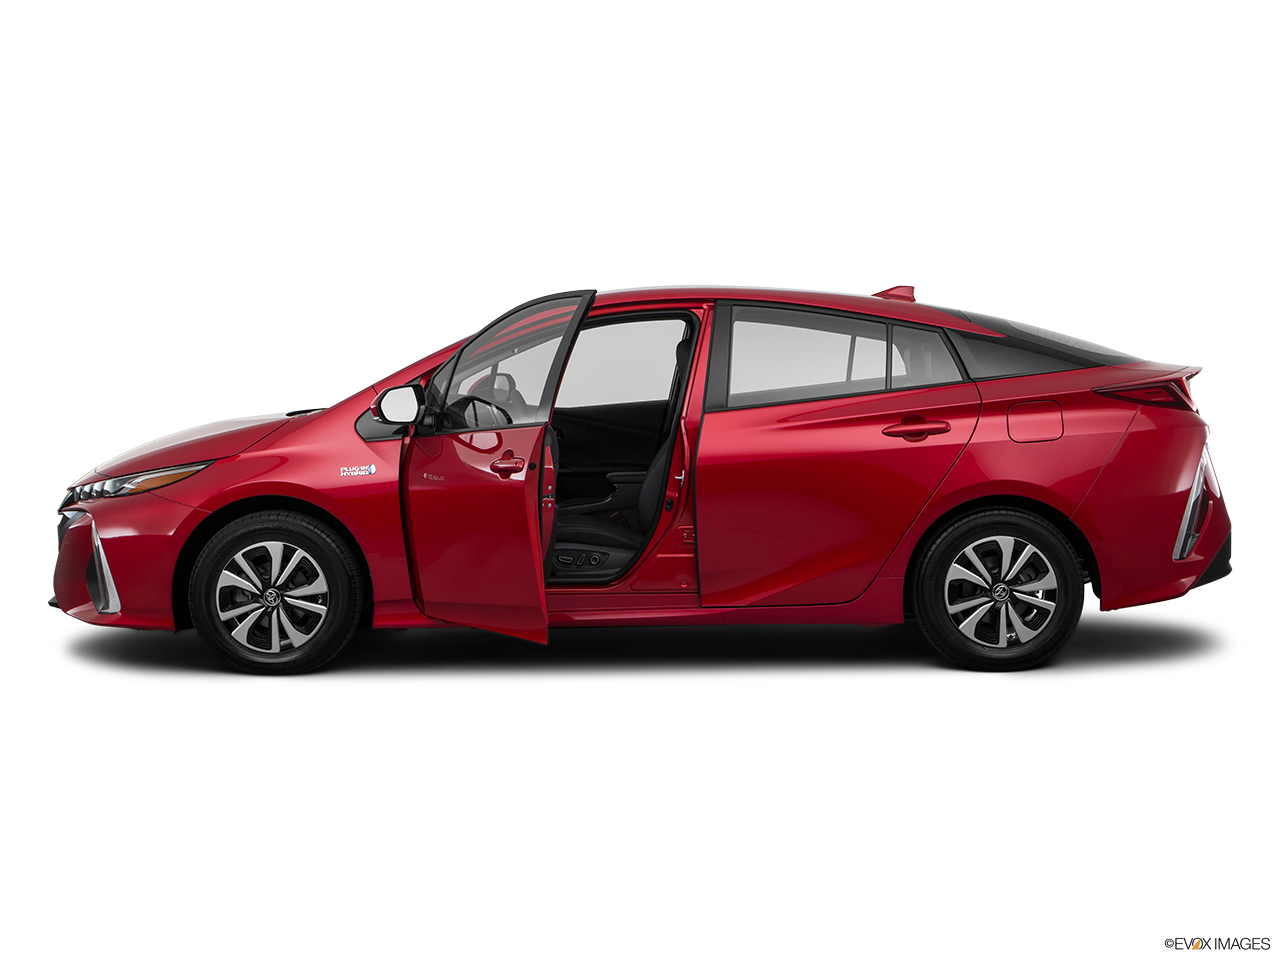 Side view of the Toyota Prius Prime